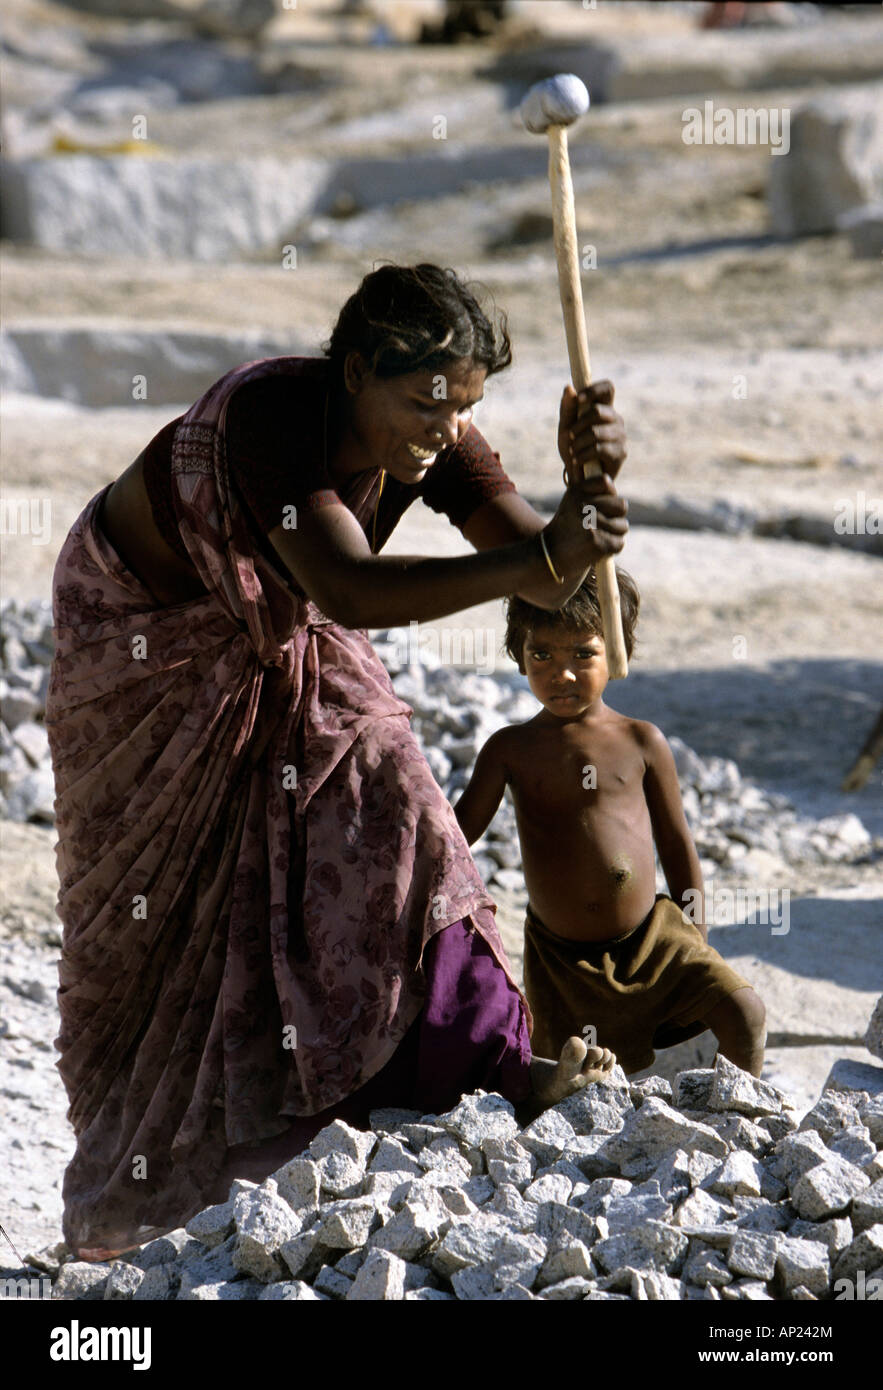 India: woman from the cast of the untouchables and her child working in a quarry near Madurai - Stock Image